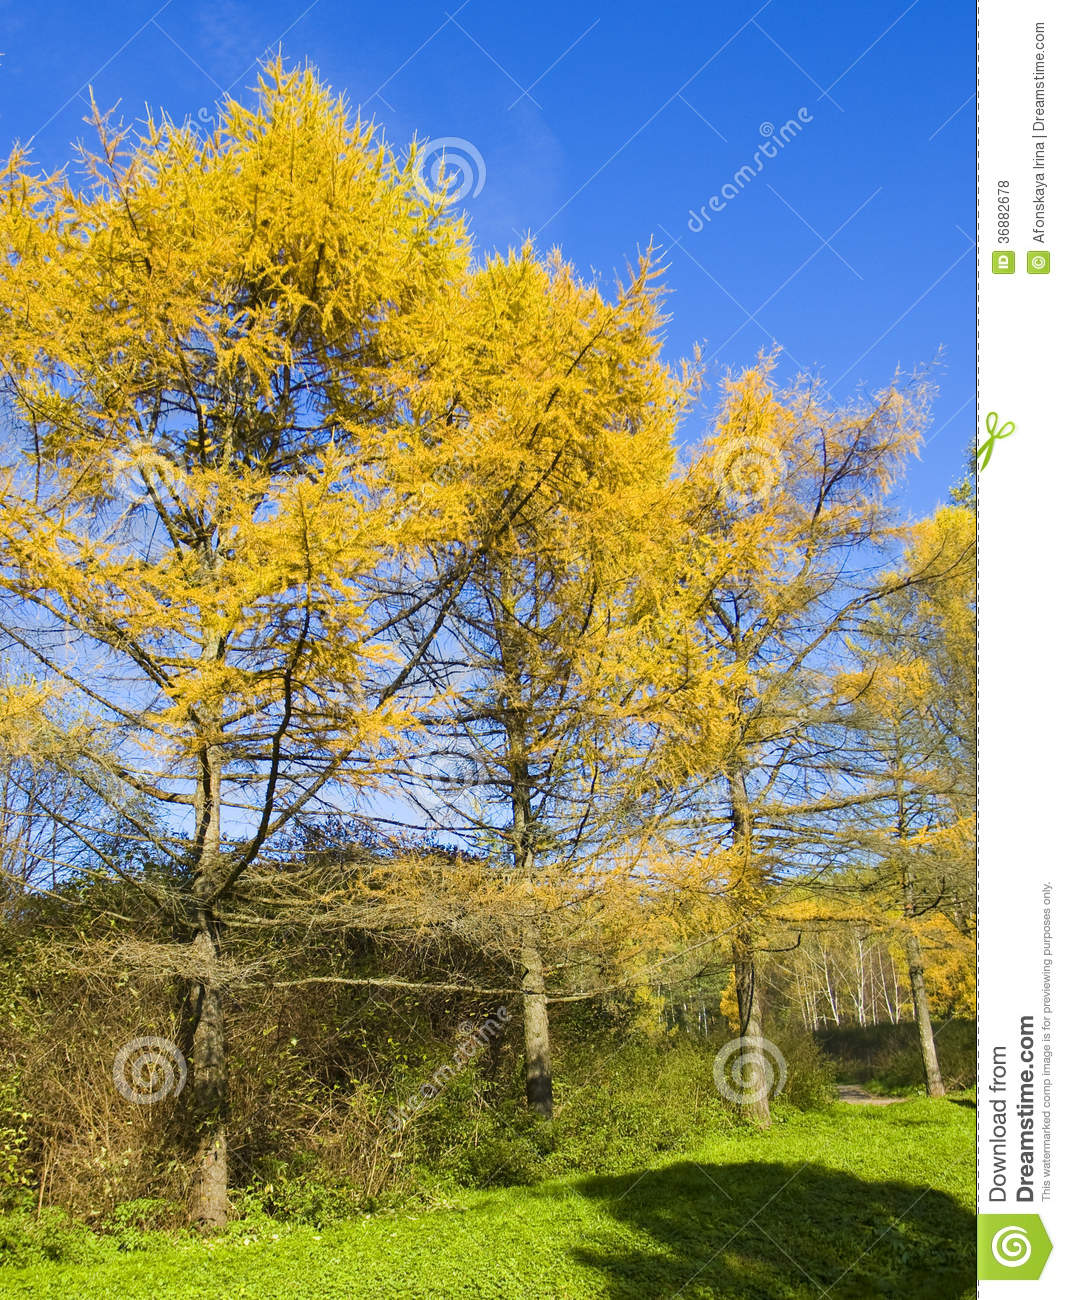 Download Larici gialli, autunno fotografia stock. Immagine di larice - 36882678